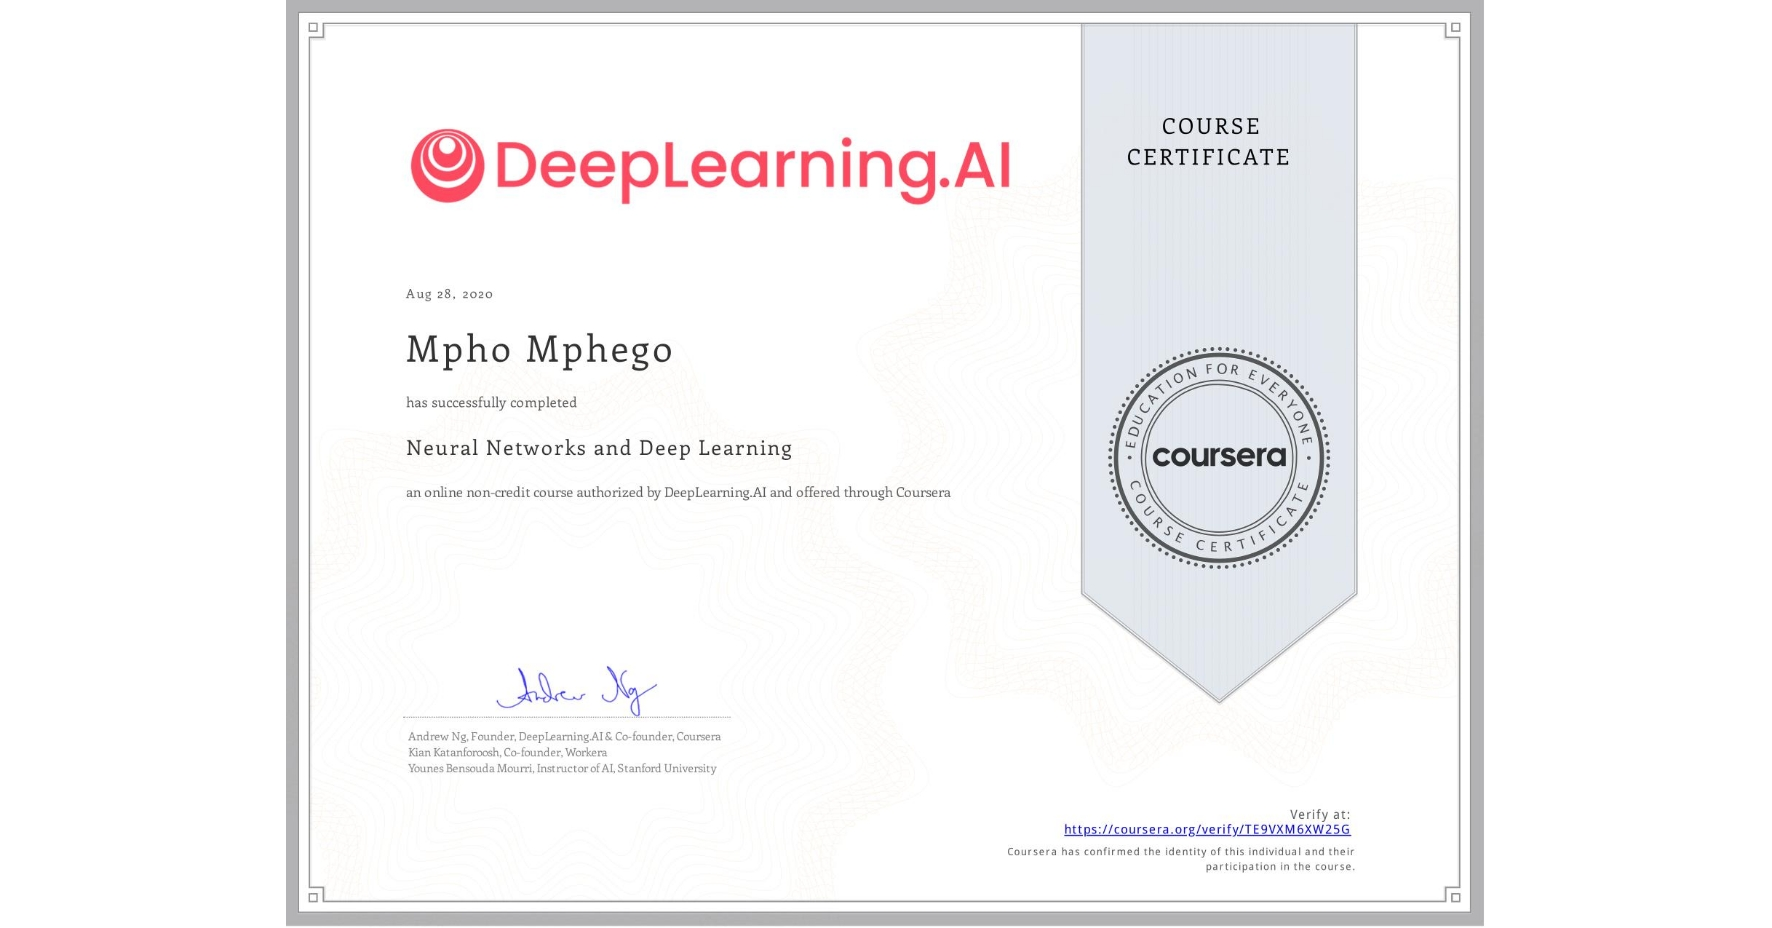 View certificate for Mpho Mphego, Neural Networks and Deep Learning, an online non-credit course authorized by DeepLearning.AI and offered through Coursera